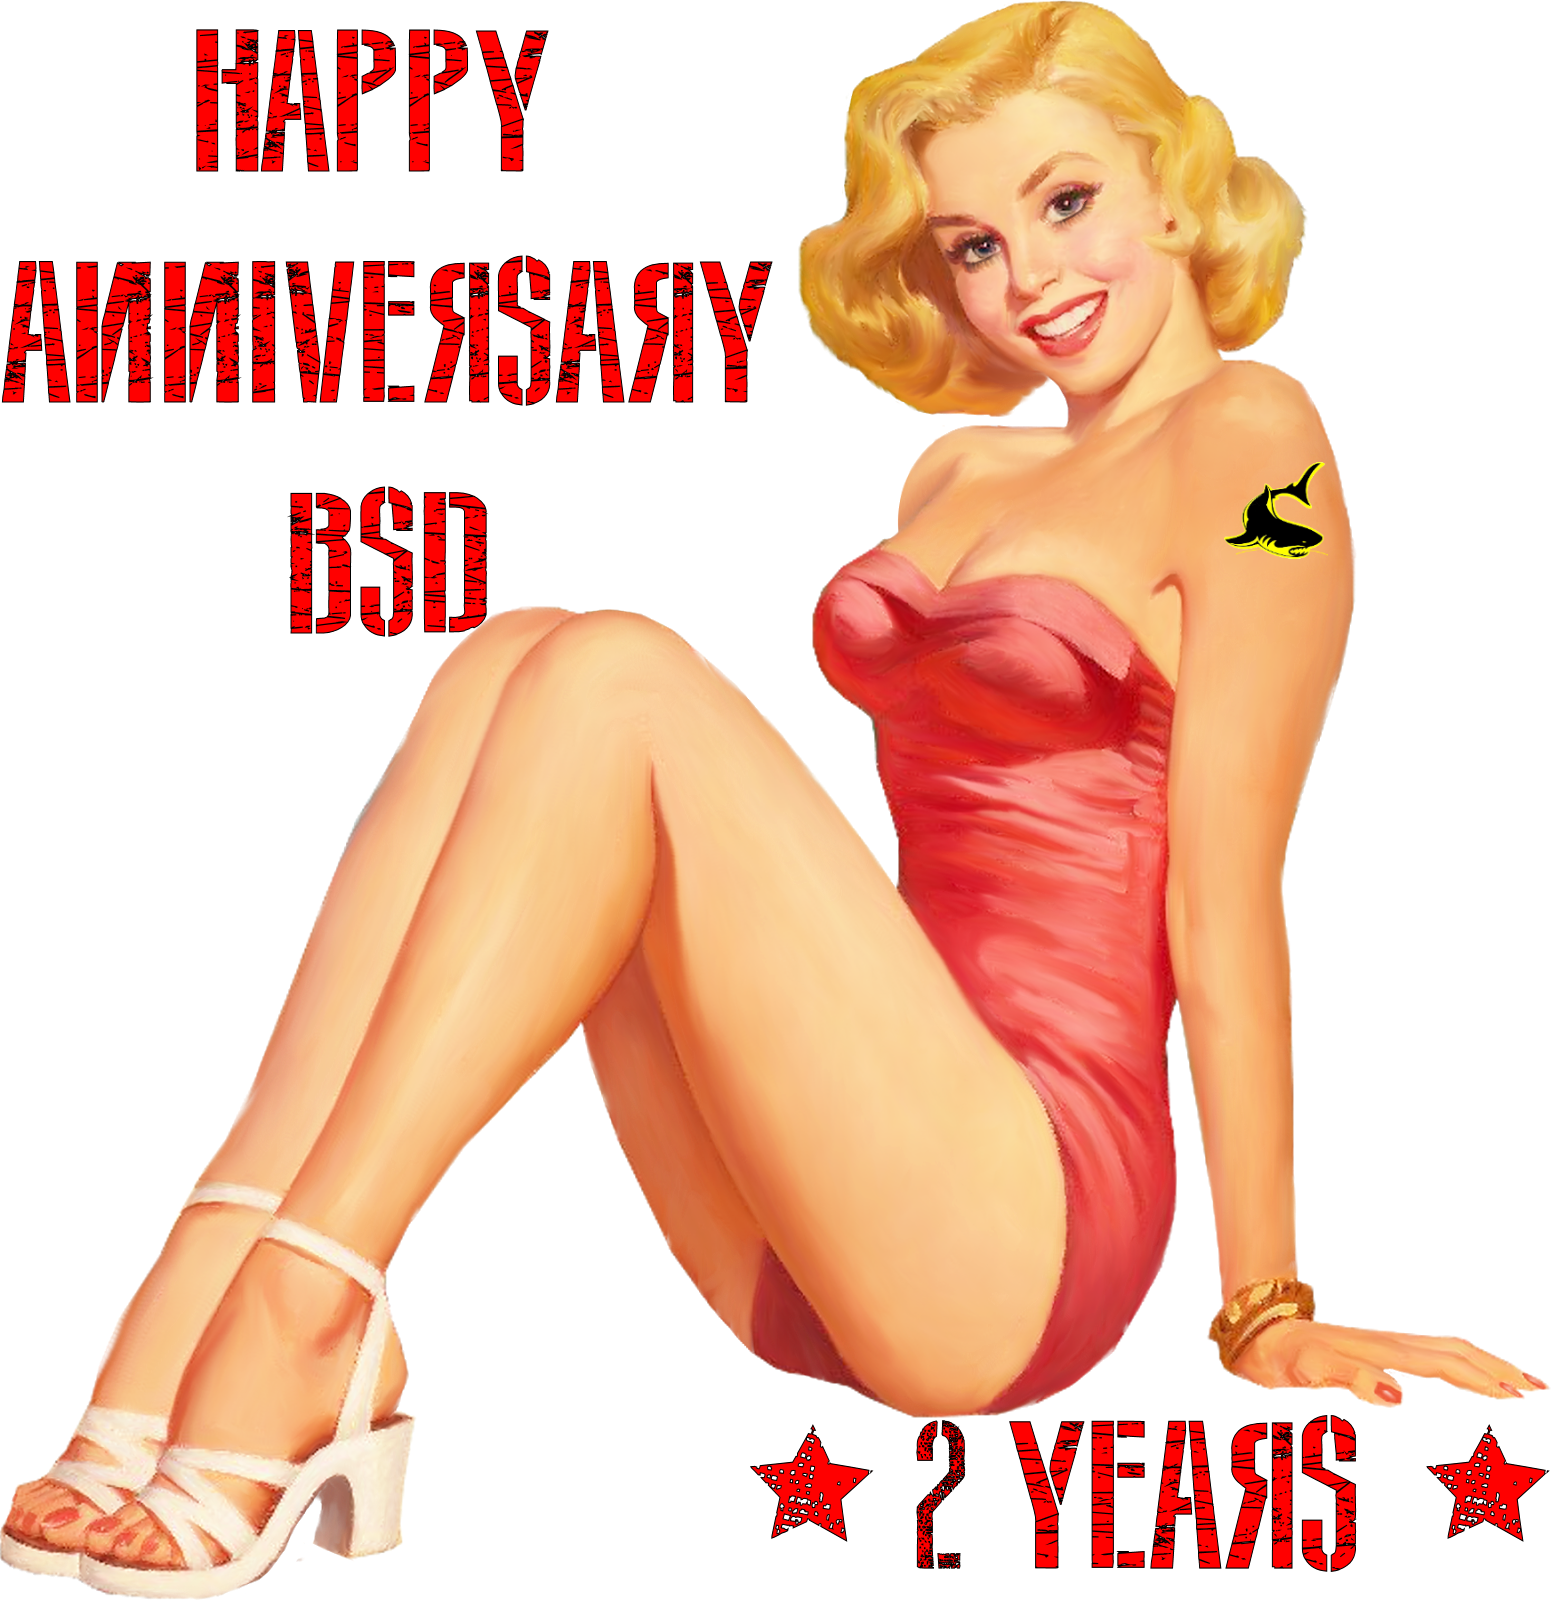 Happy Anniversary BSD! 2 years